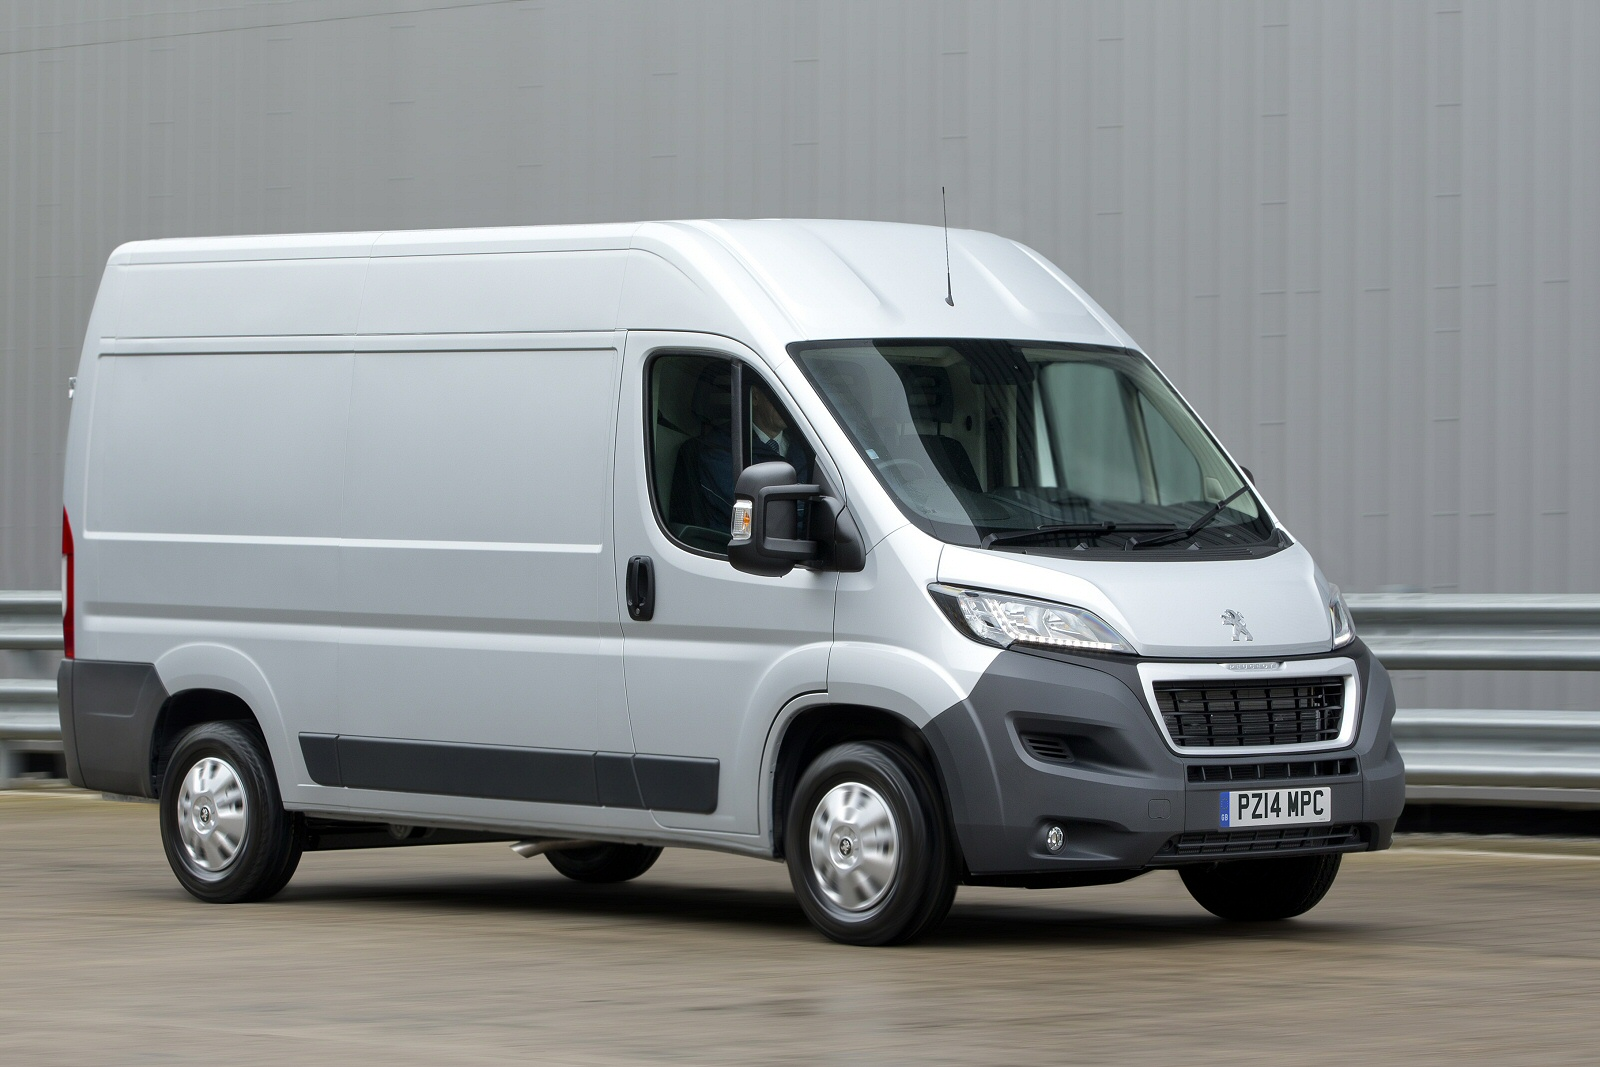 peugeot boxer van video review vansdirect. Black Bedroom Furniture Sets. Home Design Ideas